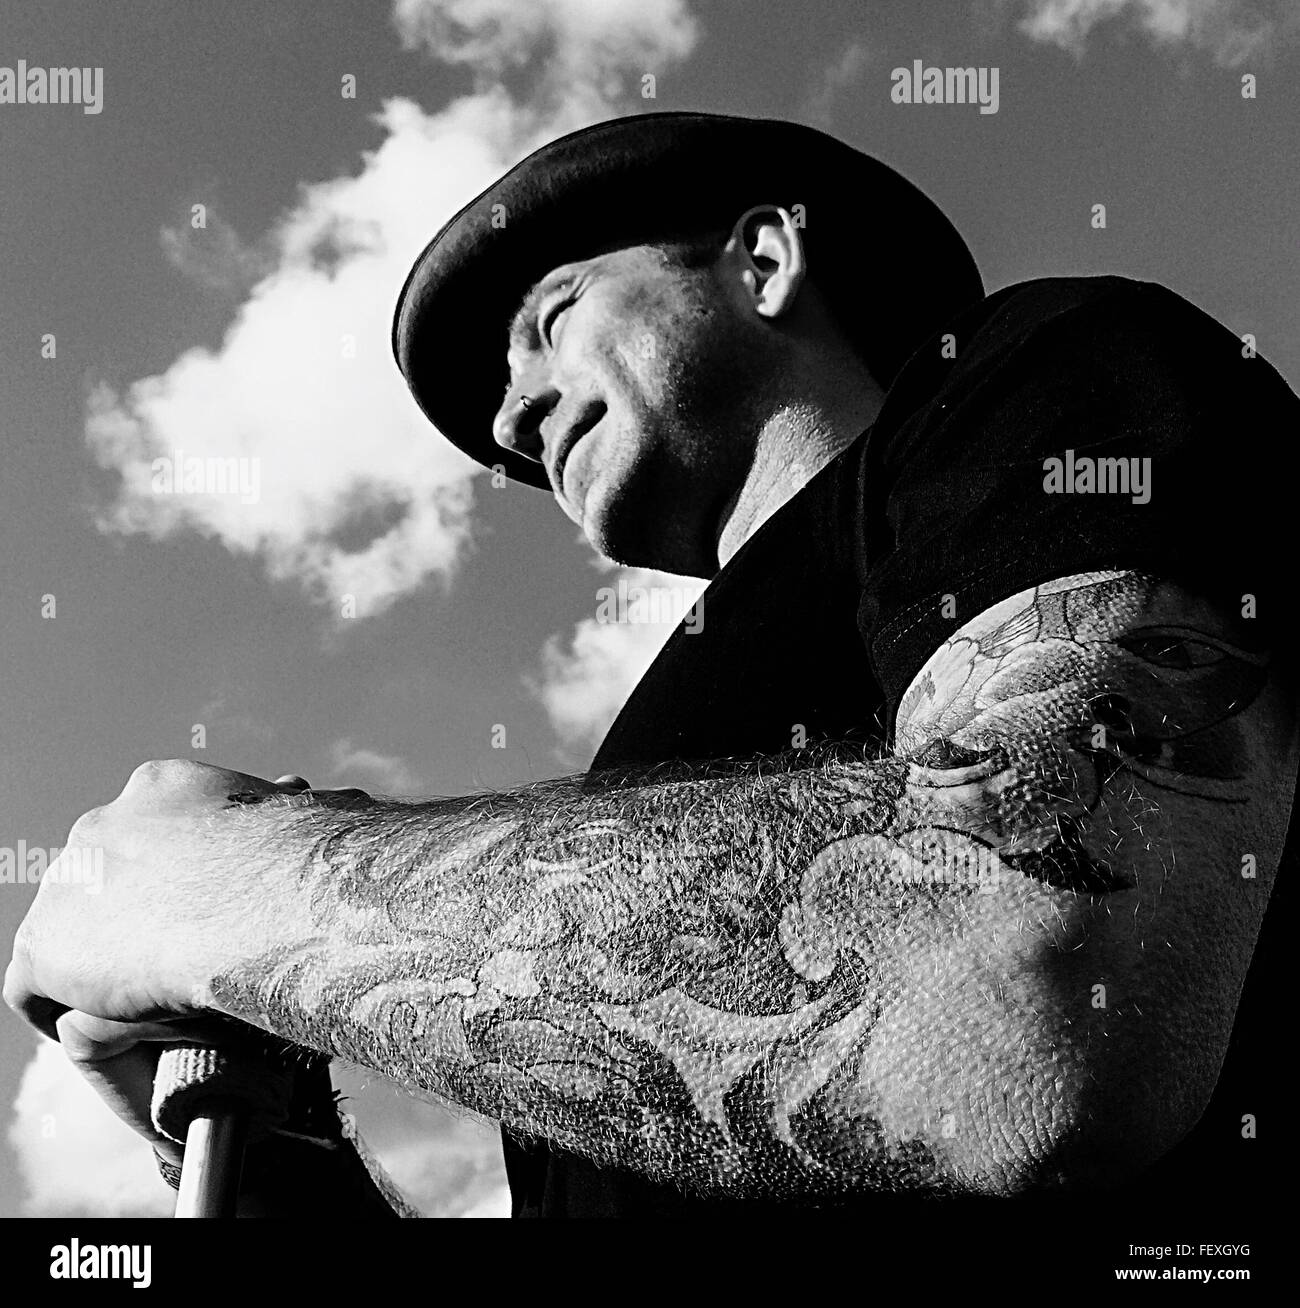 Low Angle View Of Young Man With Tattoo On Arm Against Sky - Stock Image